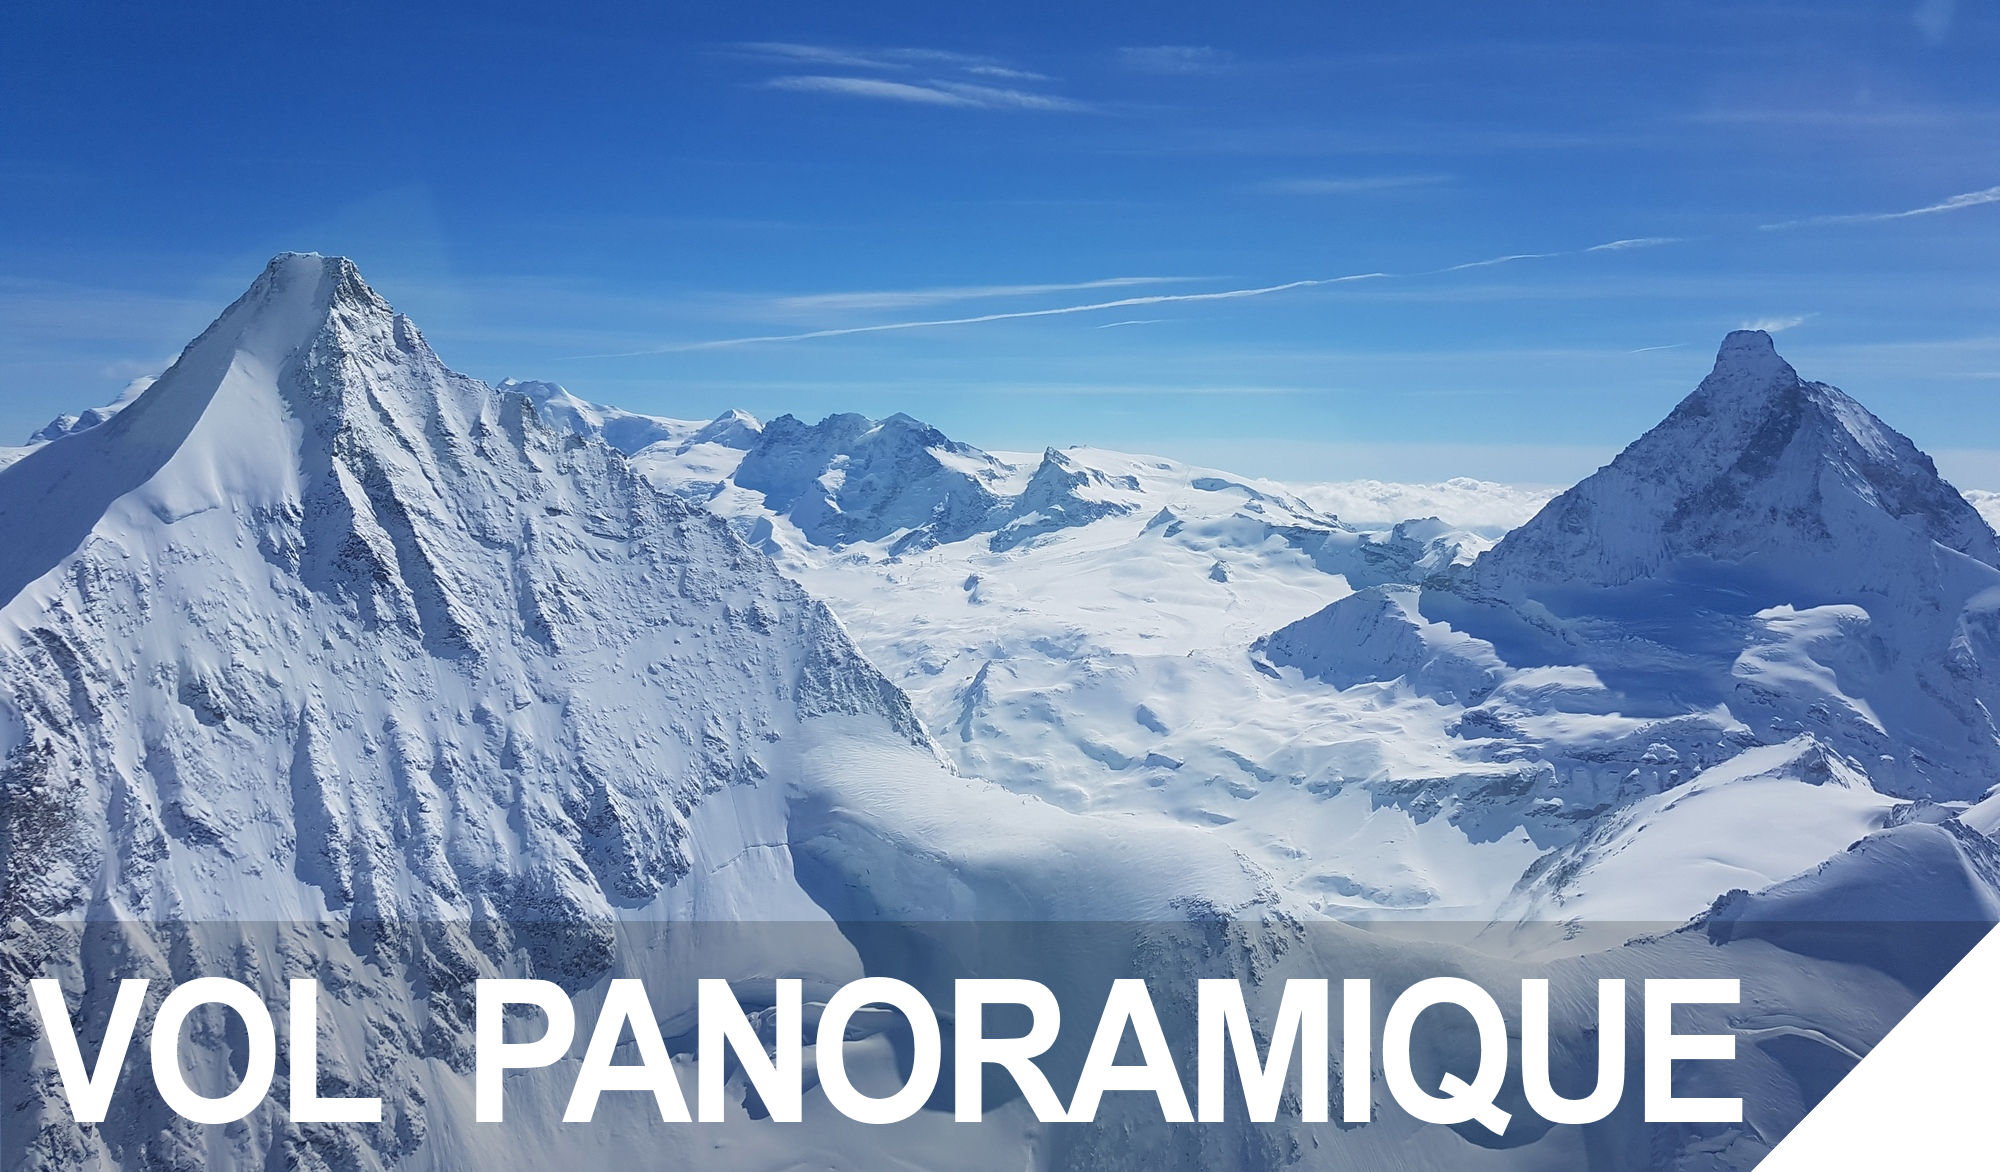 VOL PANORAMIQUE